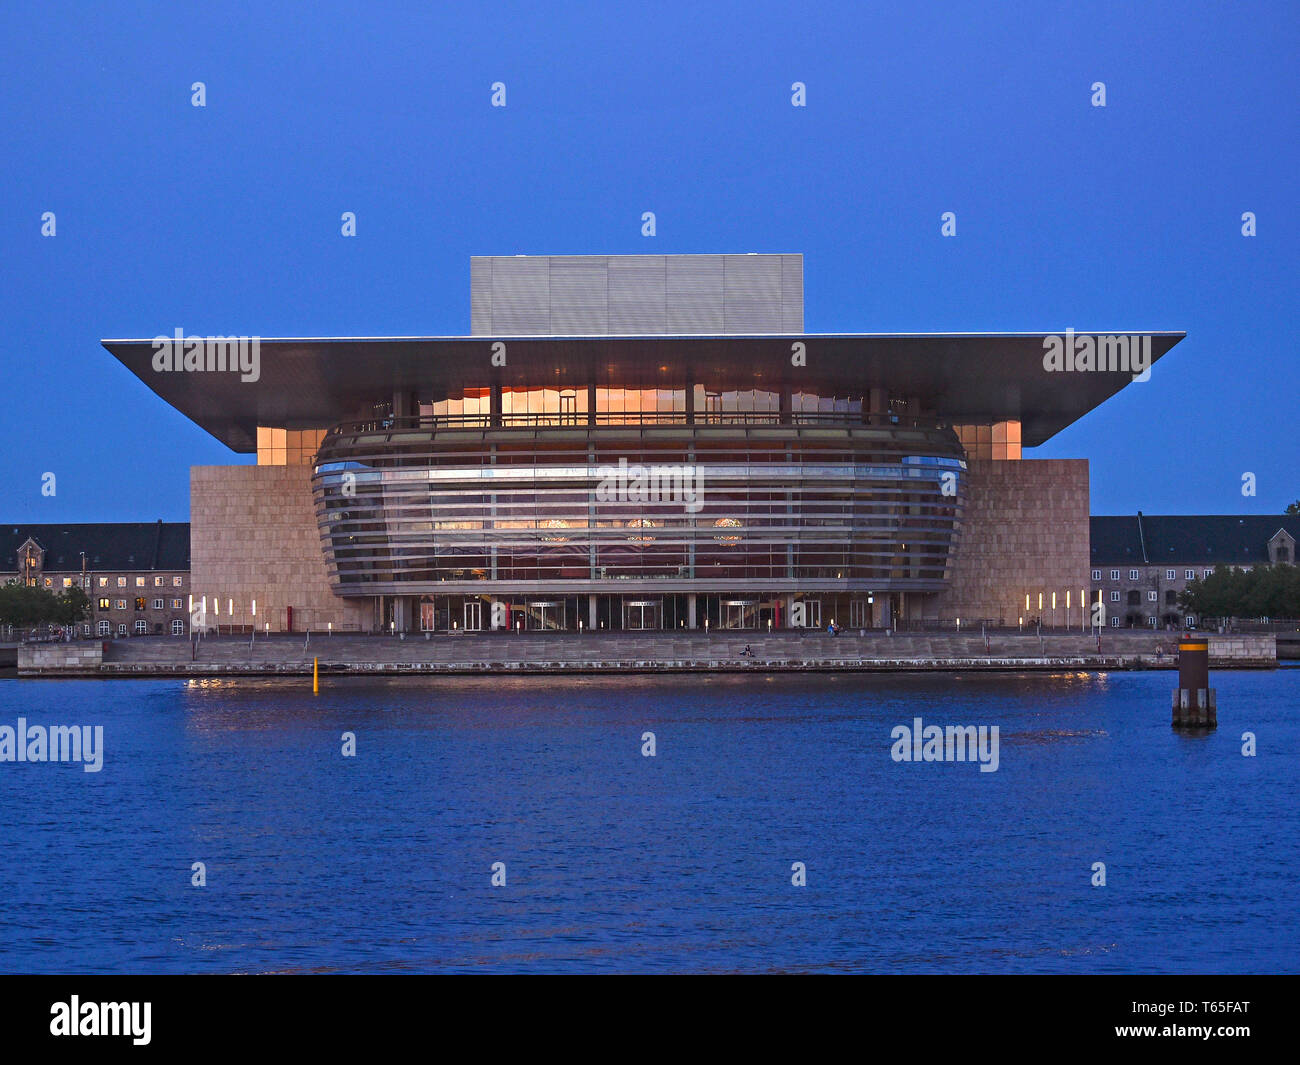 The Copenhagen Opera House is the national opera house of